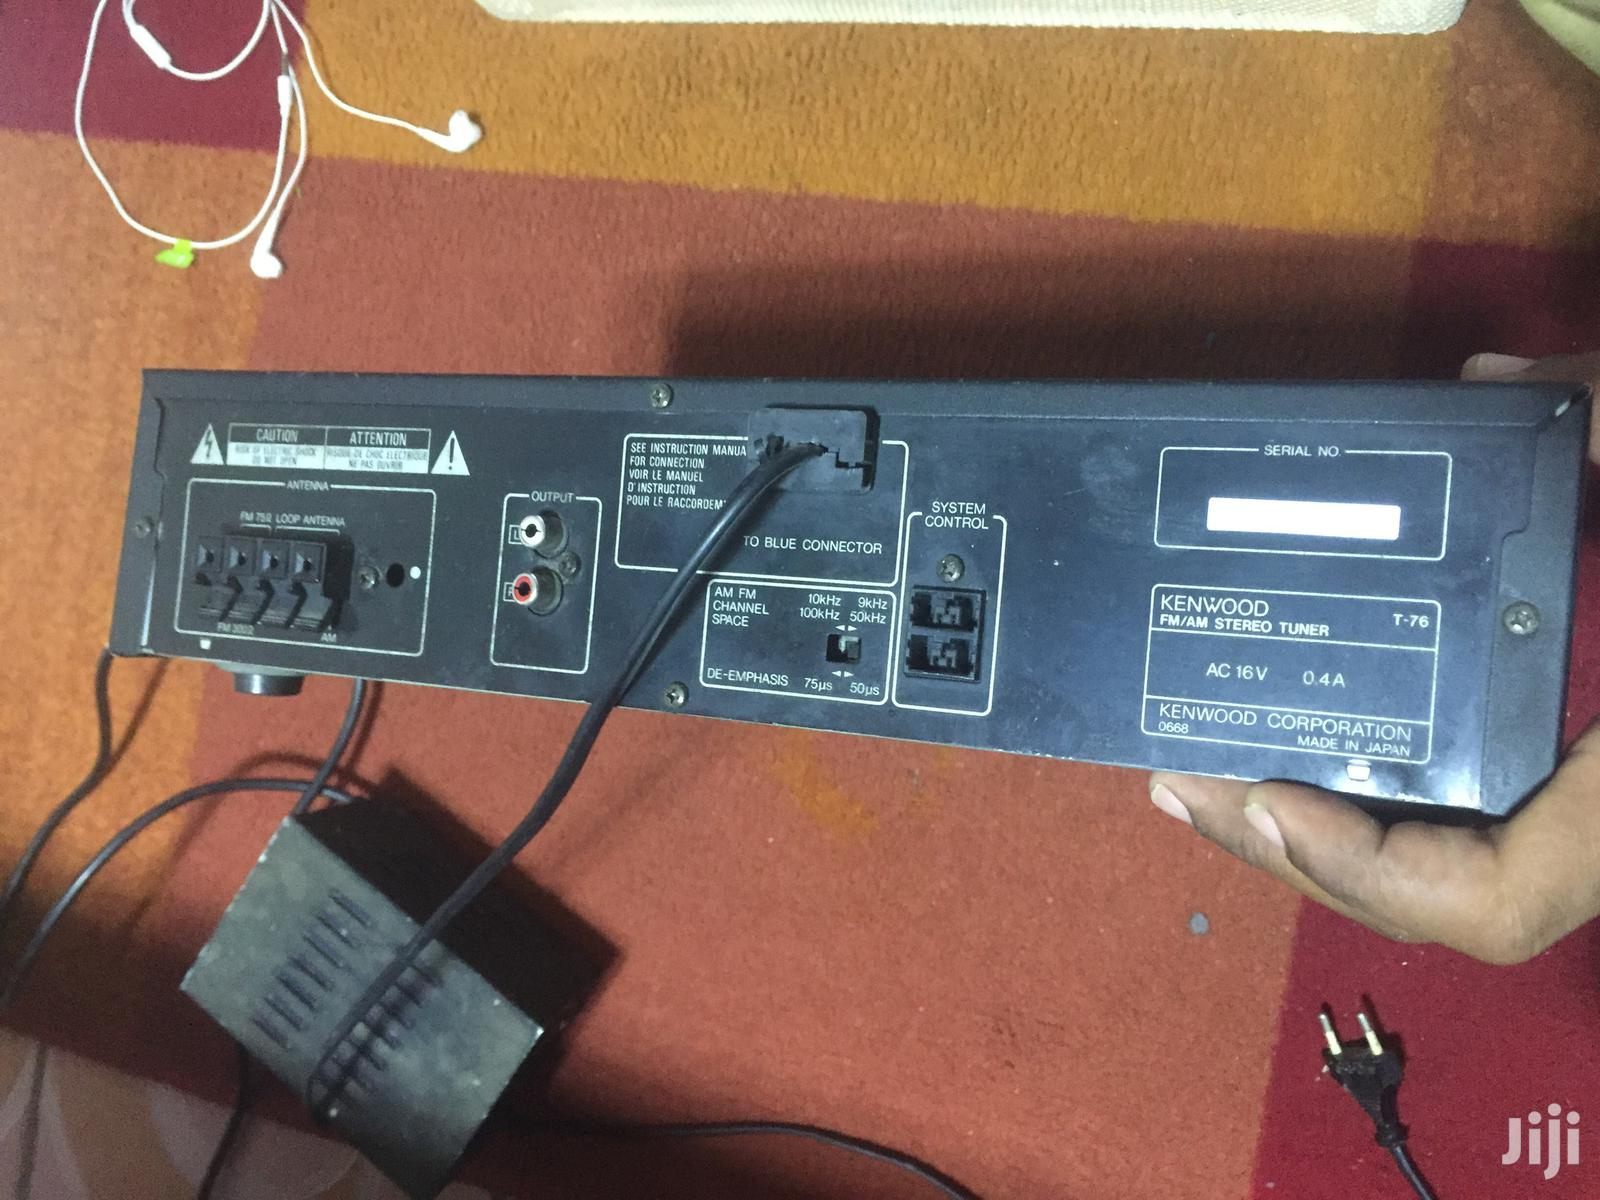 Kenwood FM/AM Stereo Synthesizer Tuner T-76   Musical Instruments & Gear for sale in Nairobi Central, Nairobi, Kenya